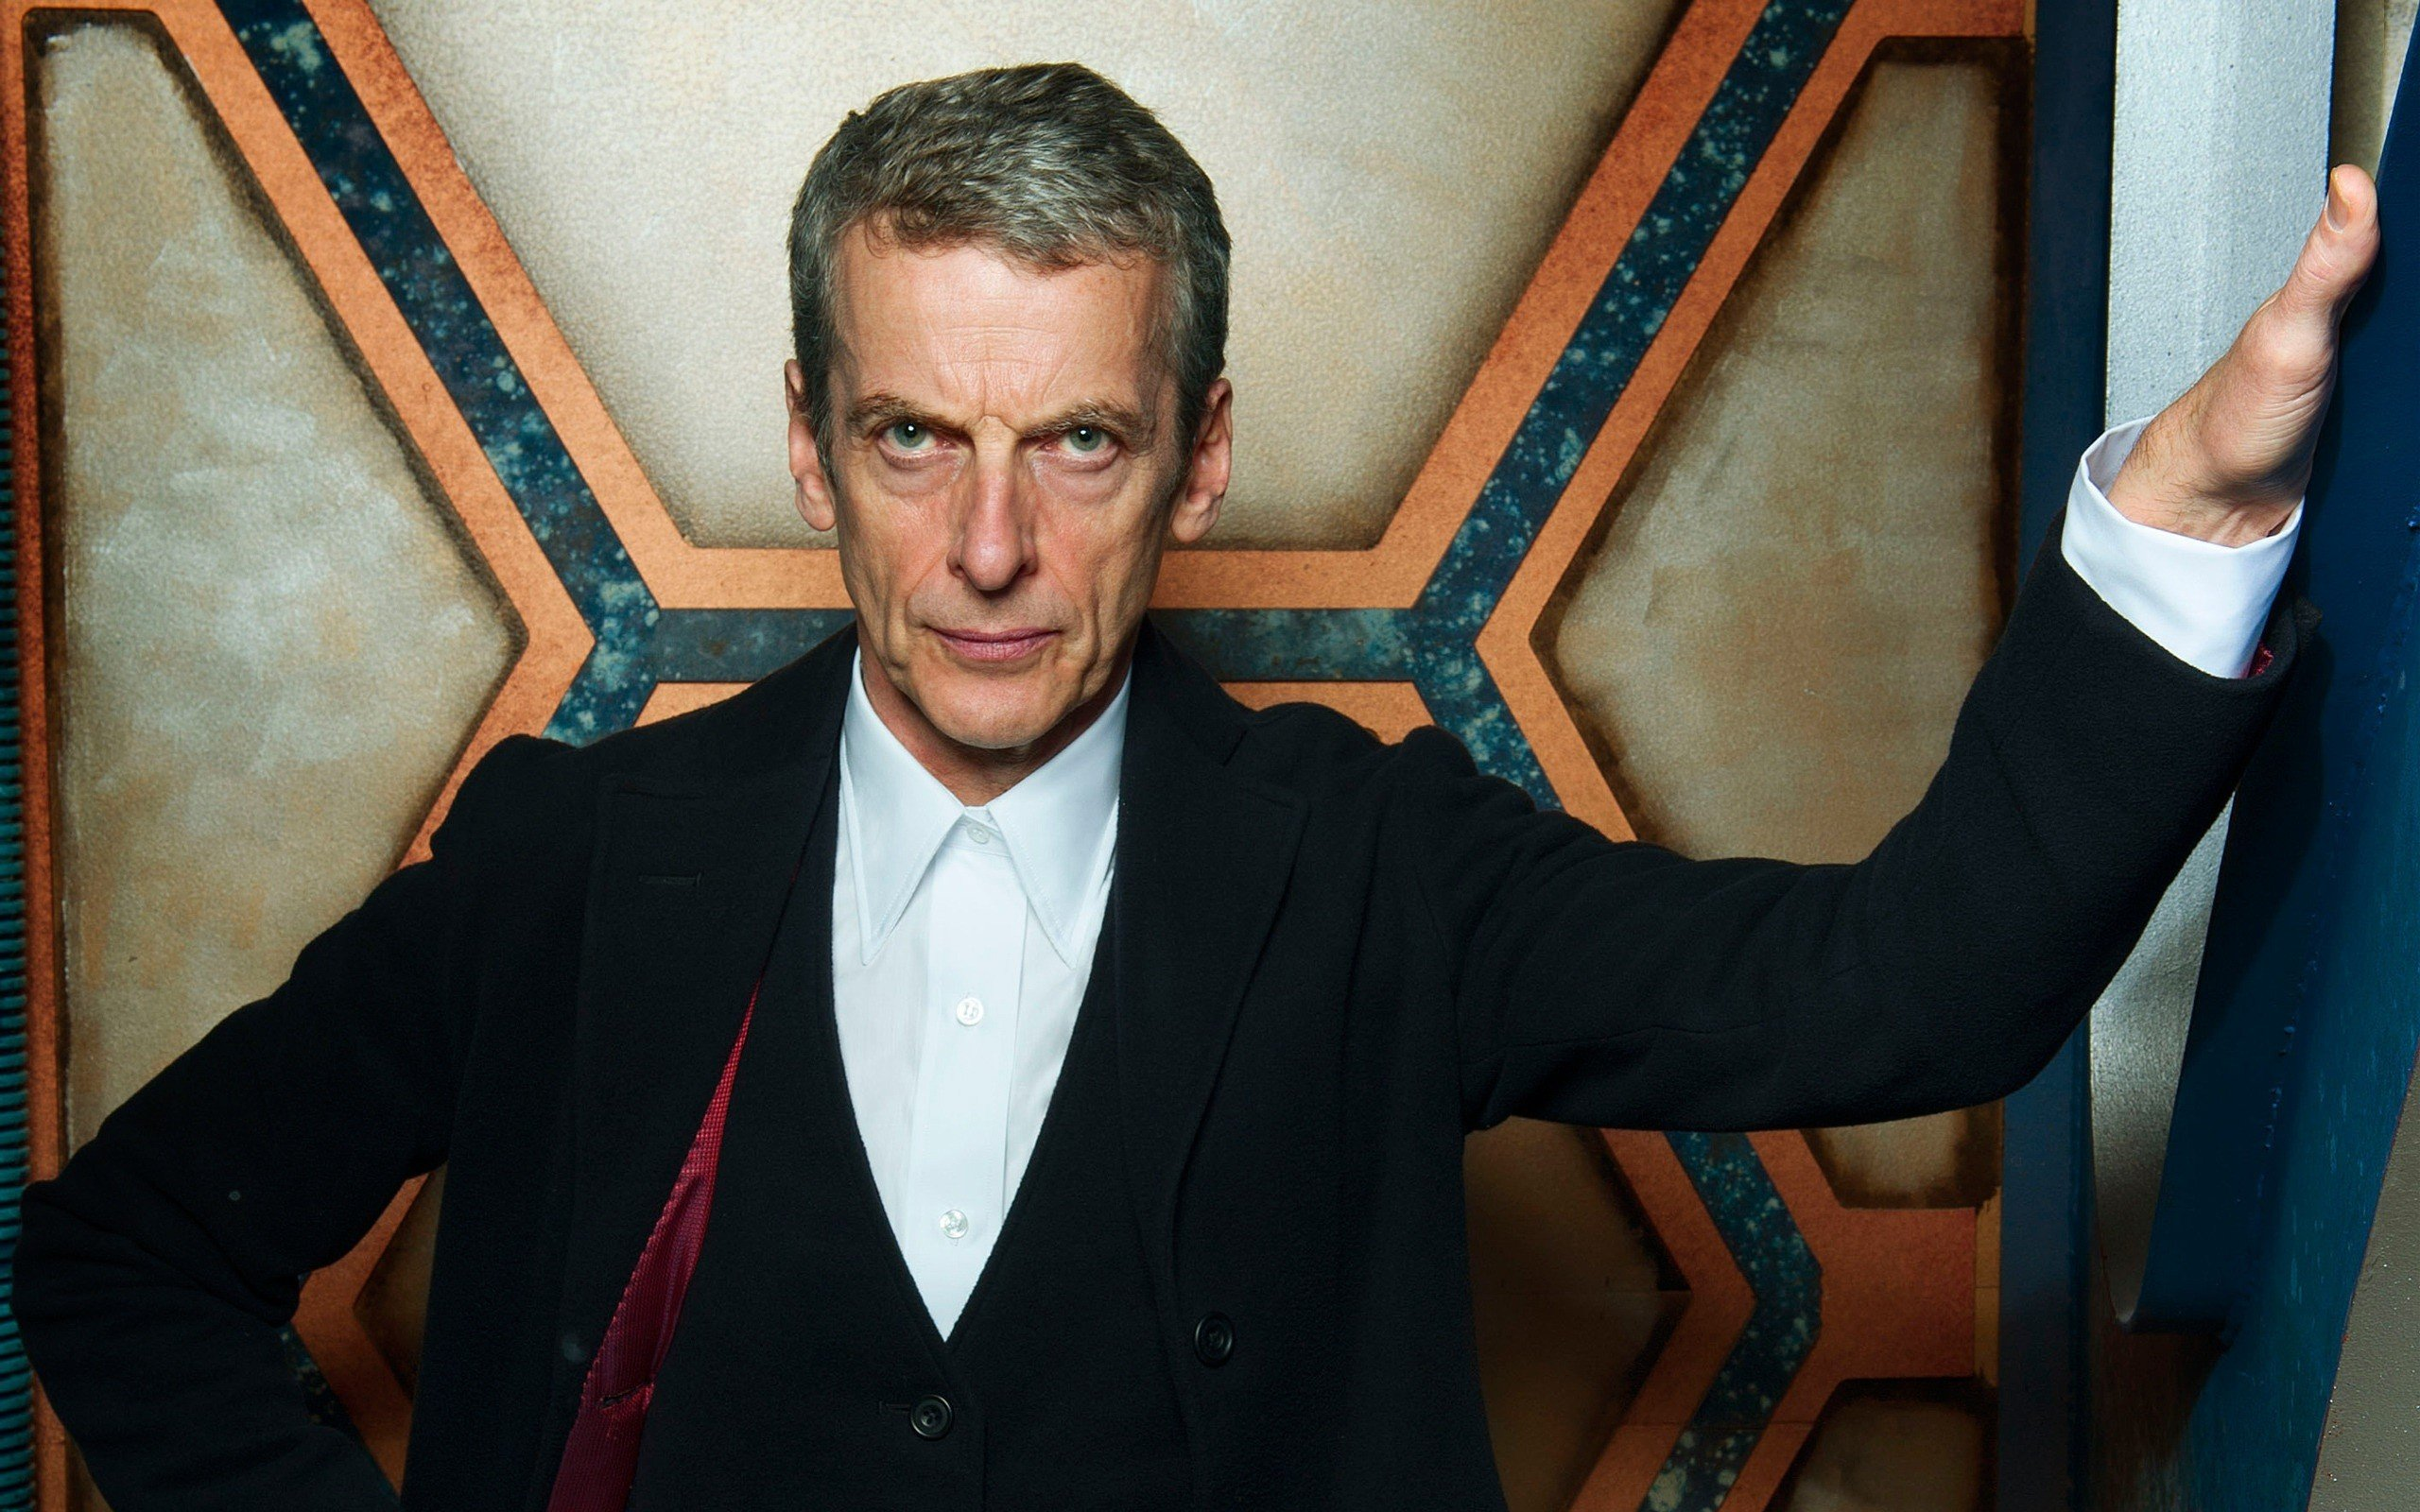 Doctor Who's Peter Capaldi On His Future In The TARDIS